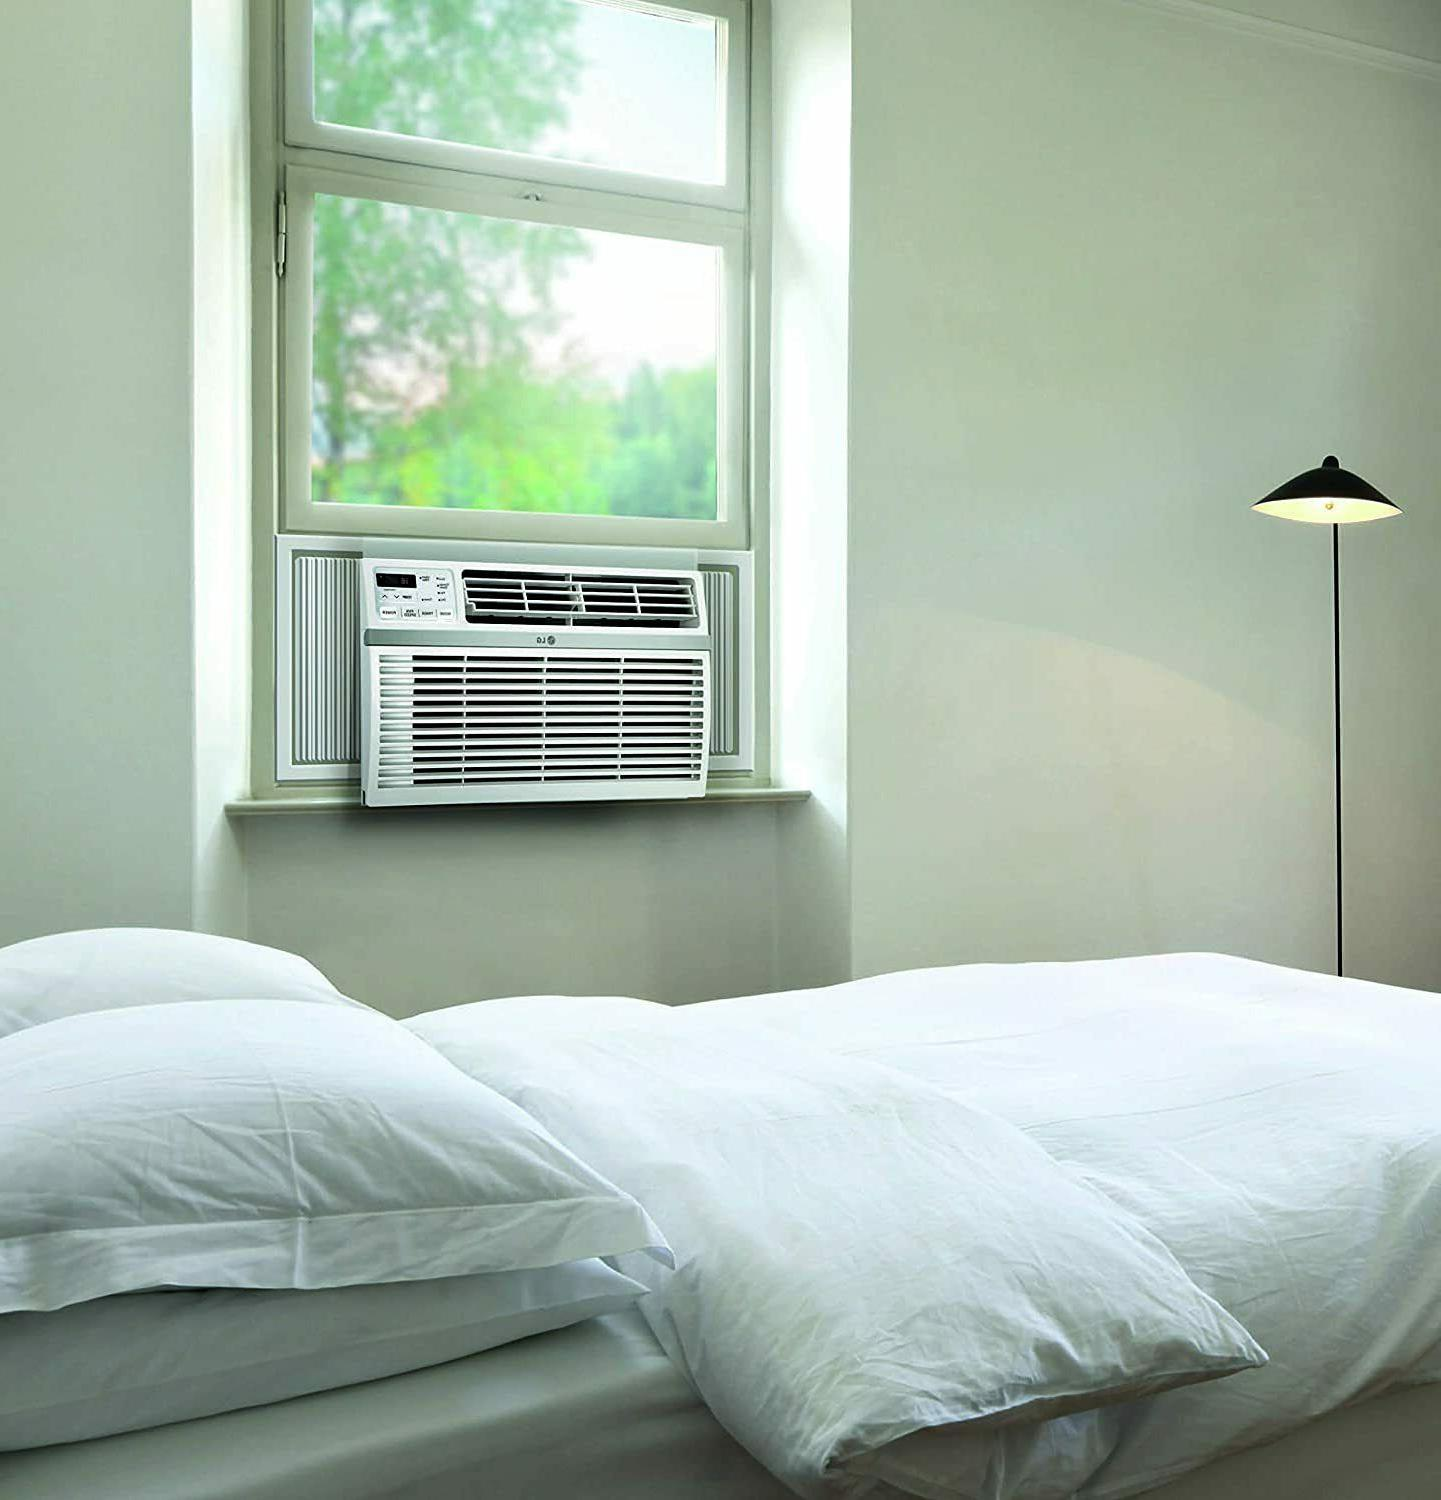 LW8016ER 115V Window-Mounted Remote Control Air Conditioner,